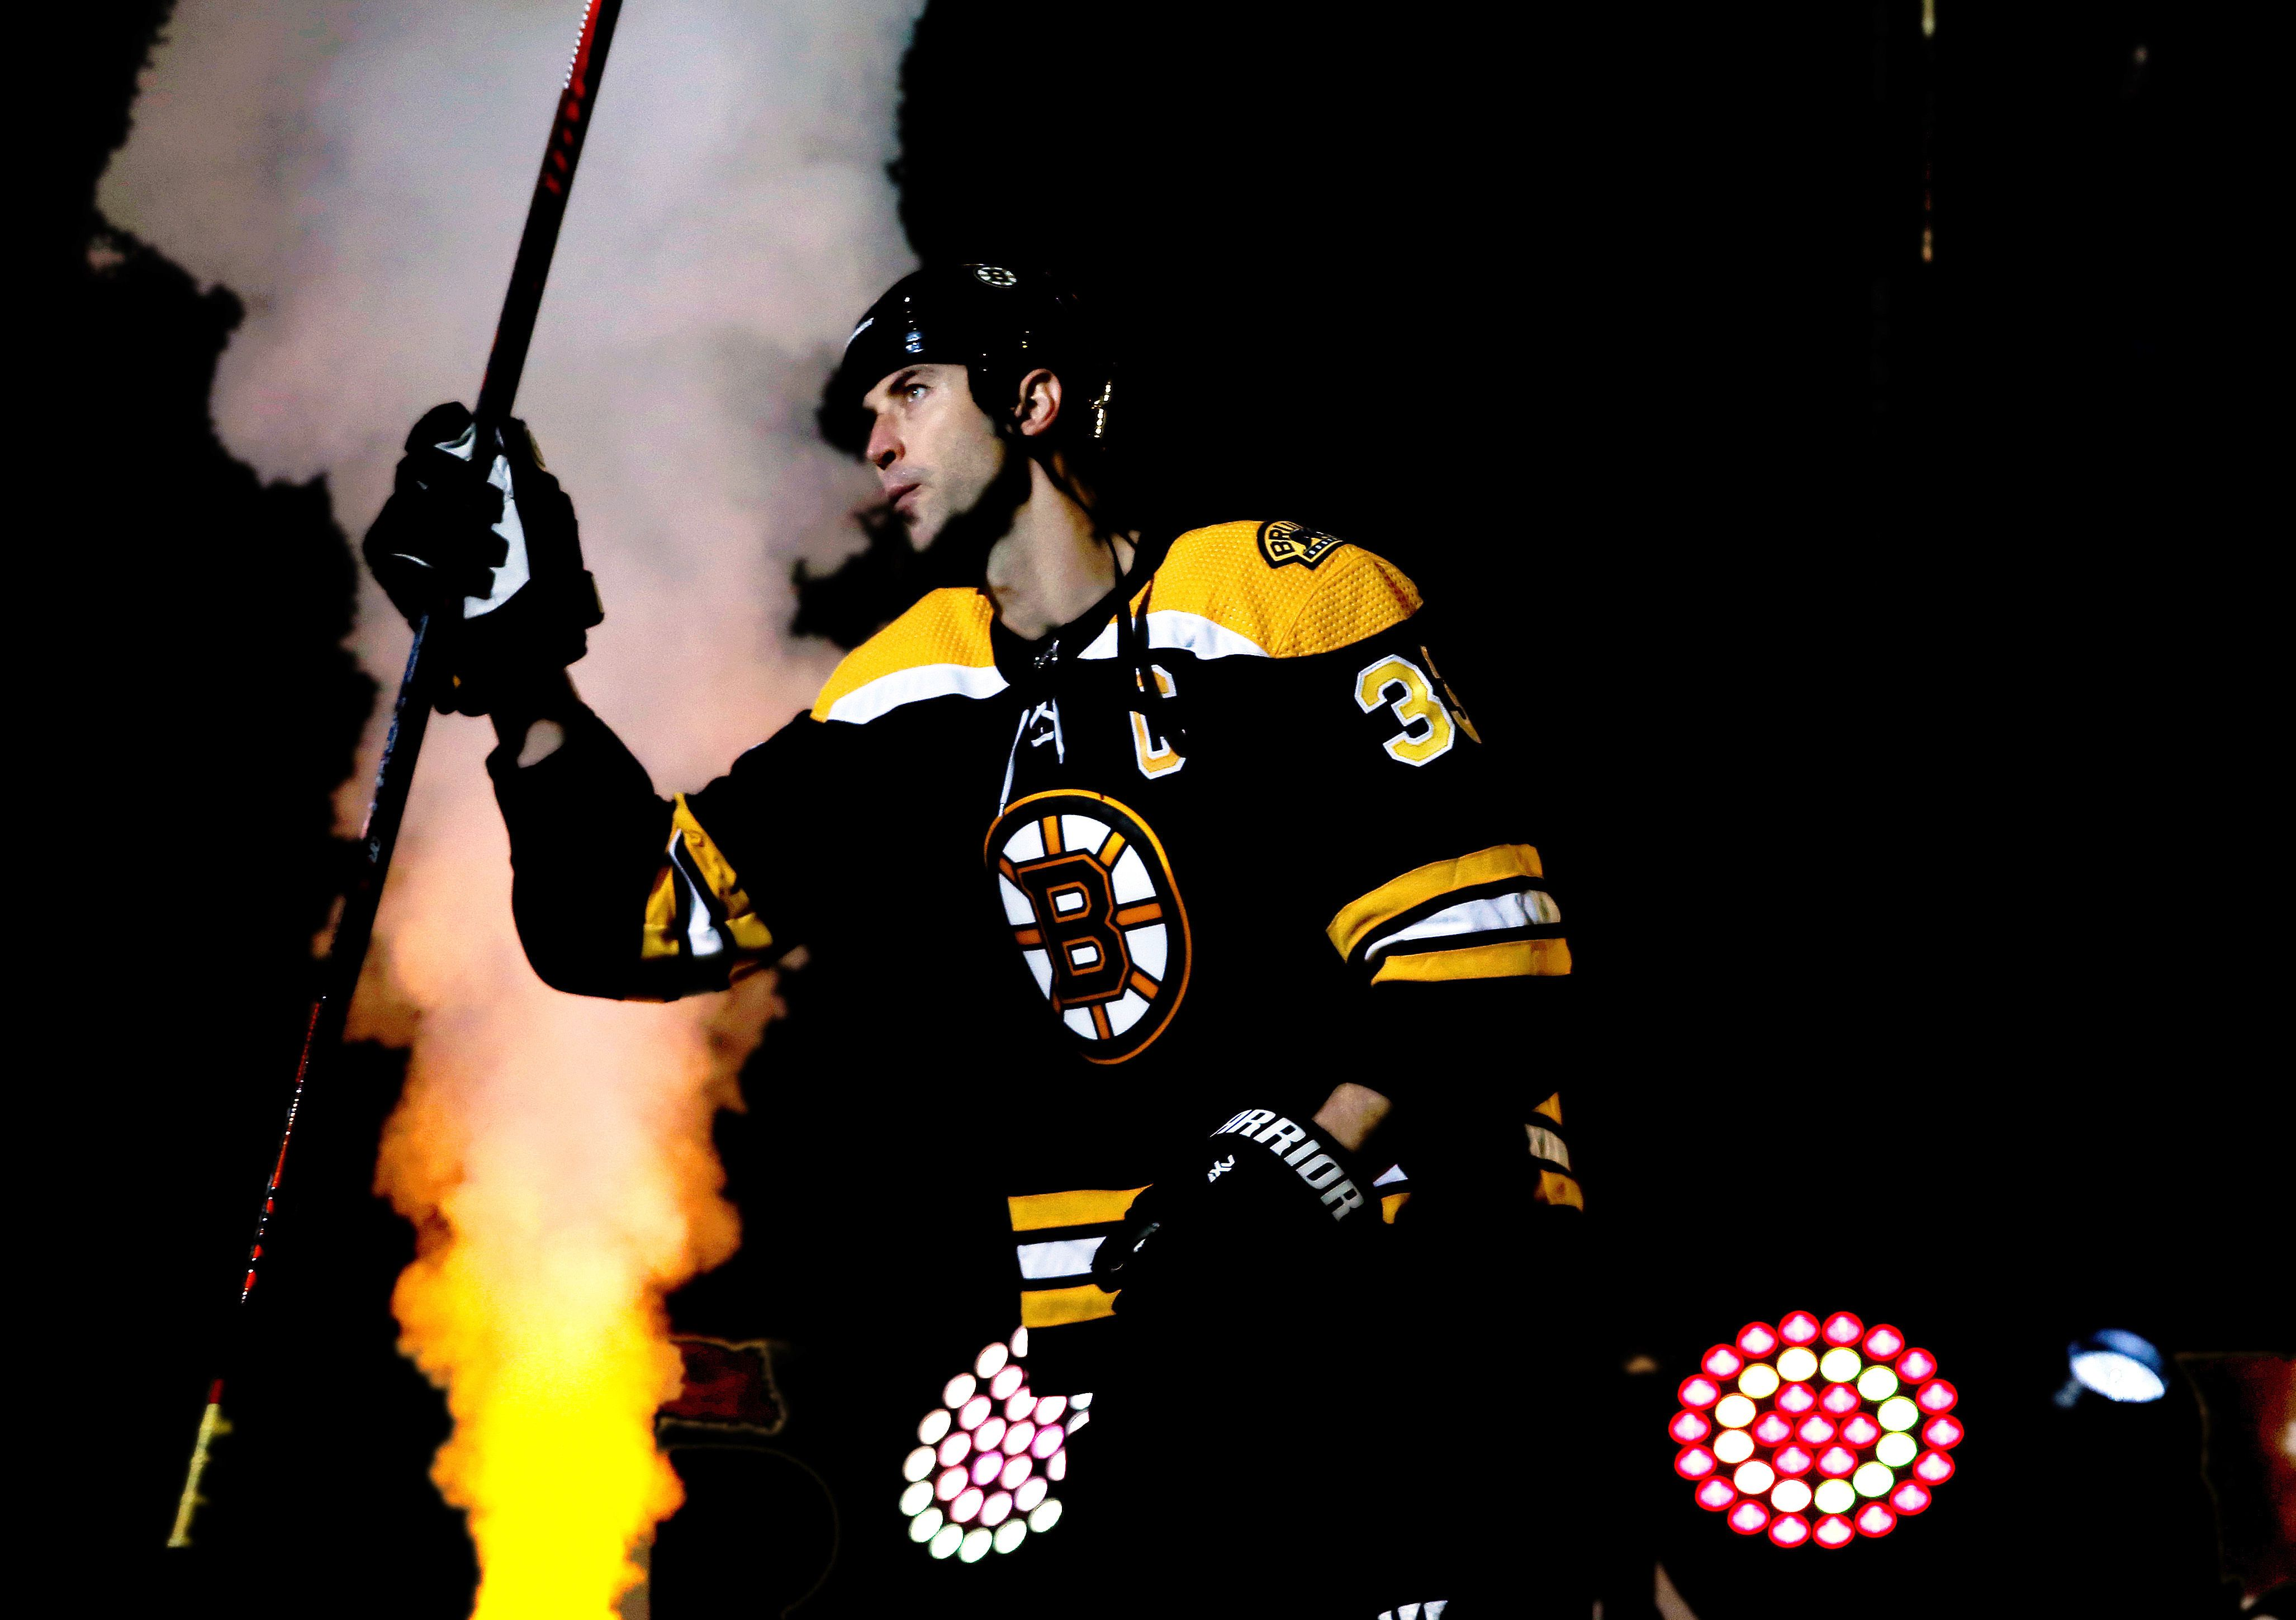 NHL's tallest player (Zdeno Chara) meets the NHL's shortest